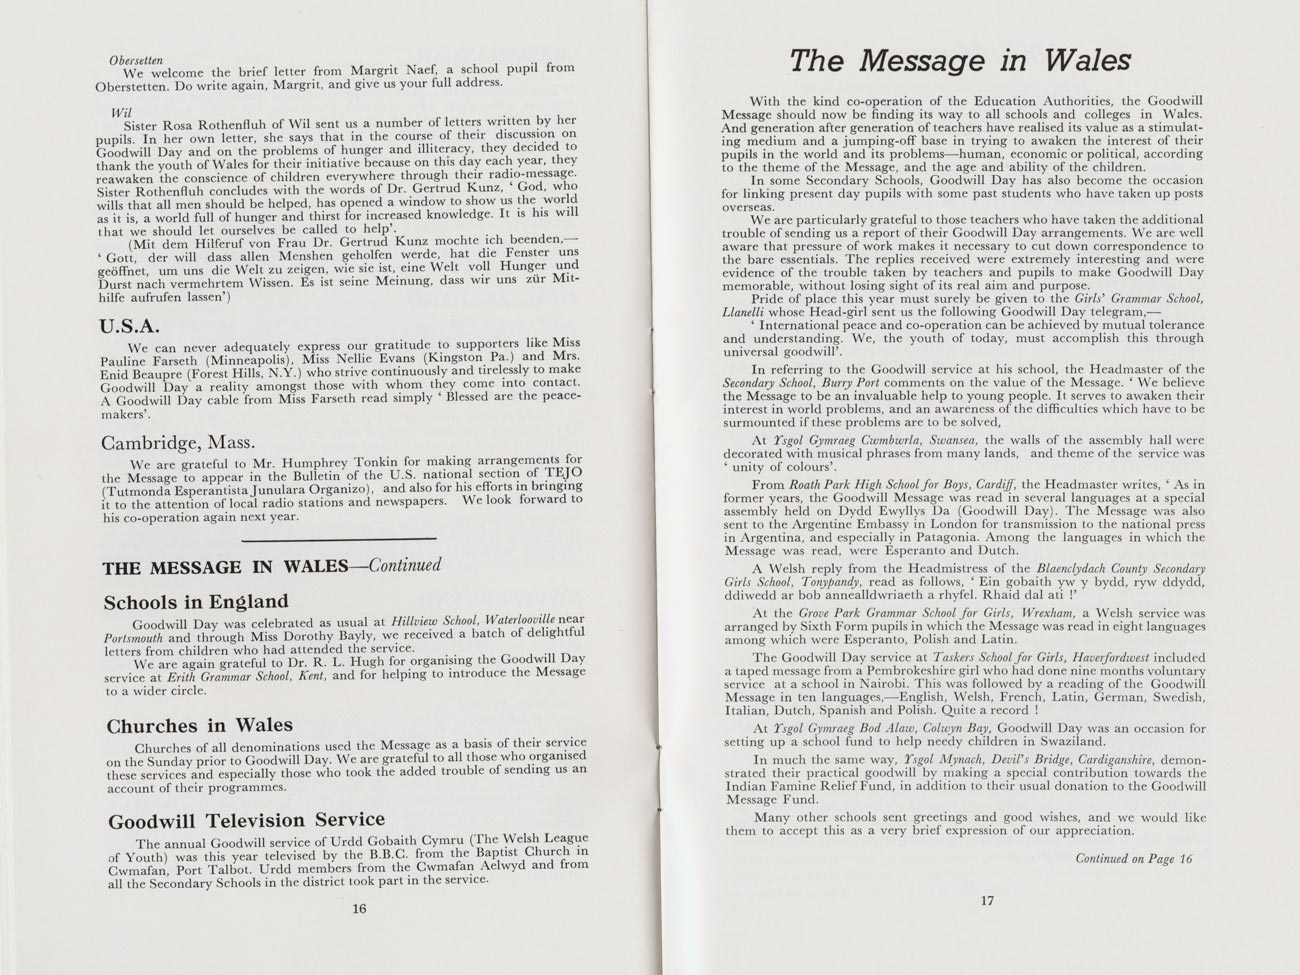 The message of goodwill of the children of Wales, 1967